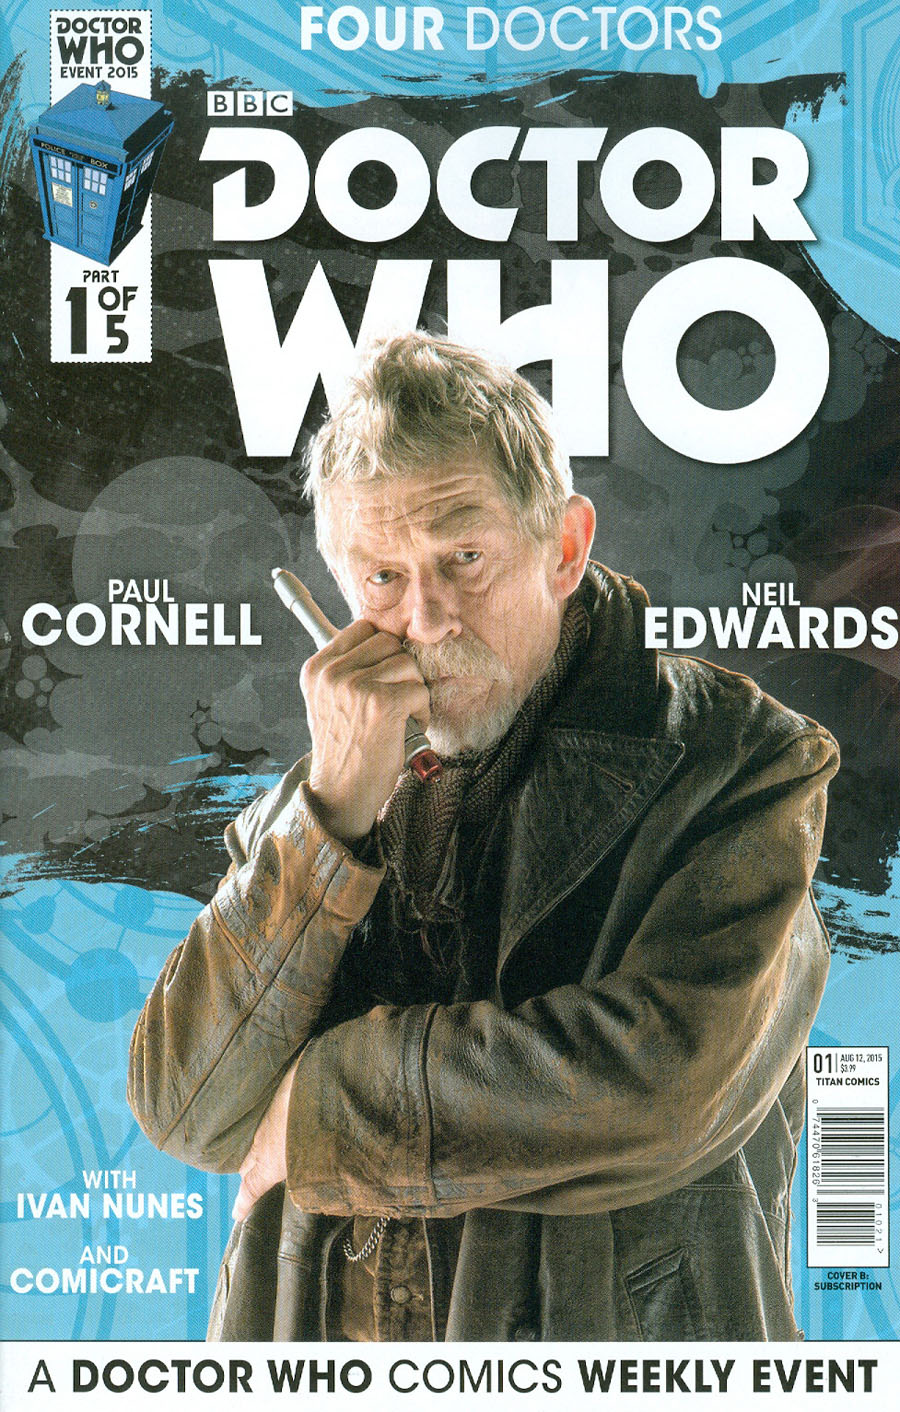 Doctor Who Event 2015 Four Doctors #1 Cover B Variant Interlinking Photo Subscription Cover